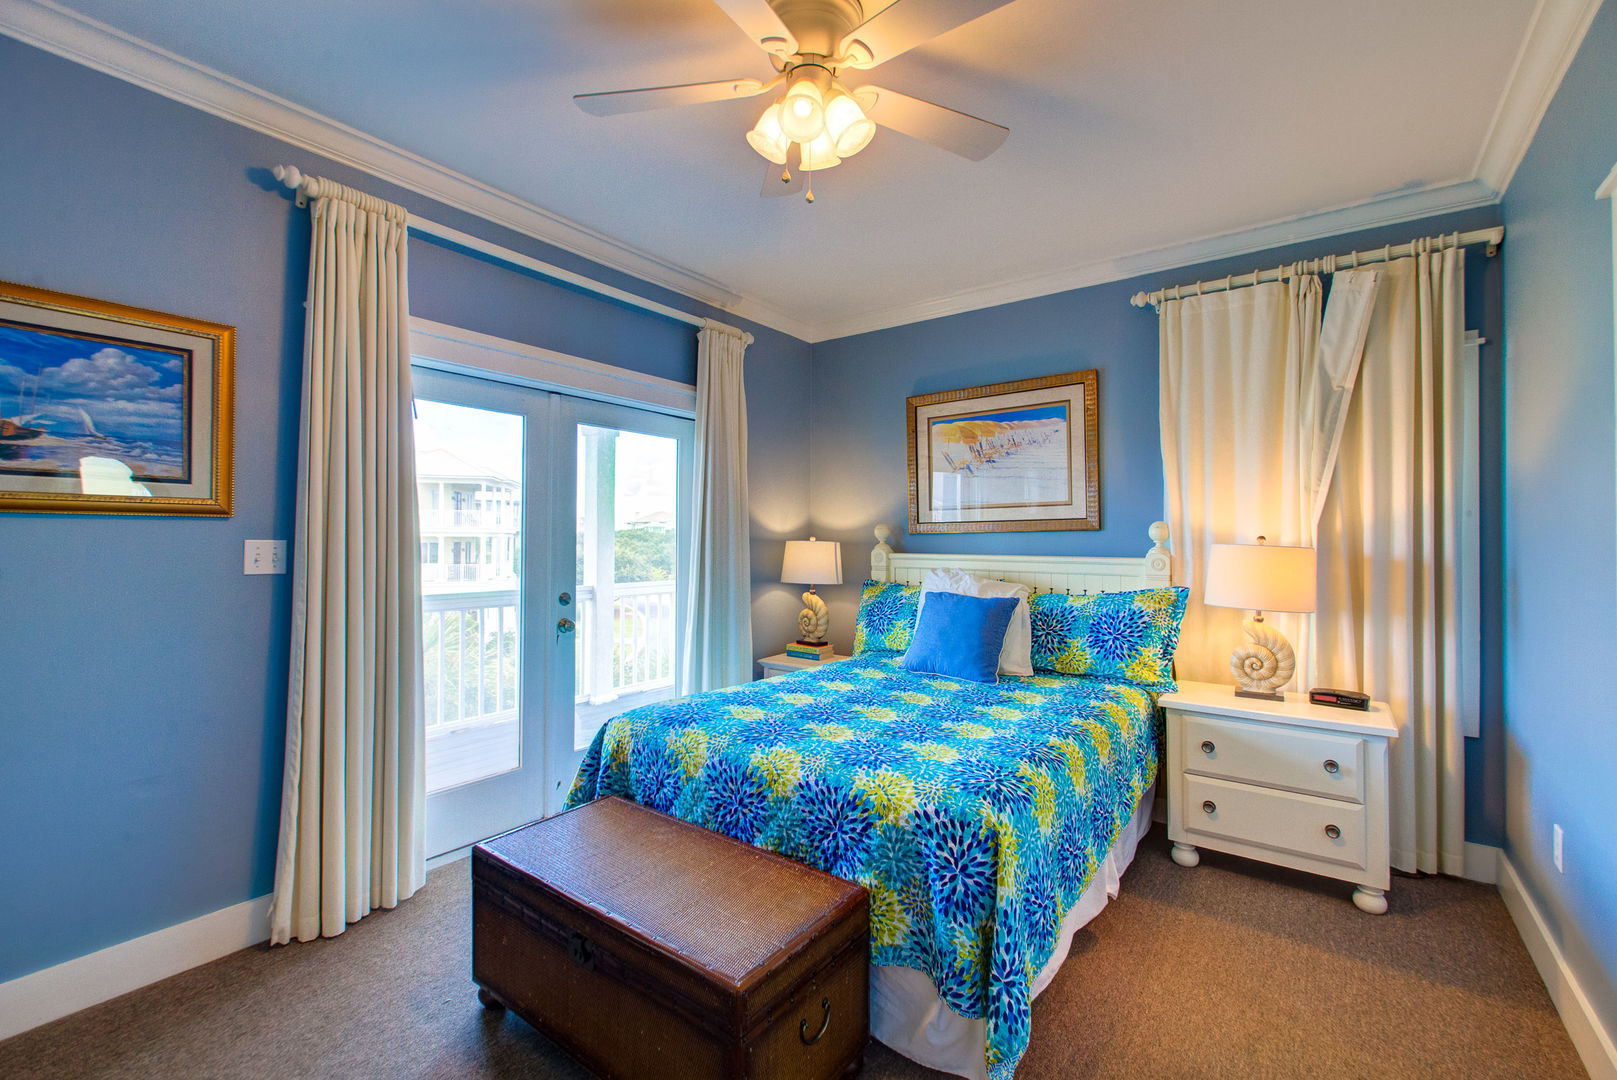 Large Bed, Nightstands, Lamps, Doors to the Balcony, and Storage Trunk.